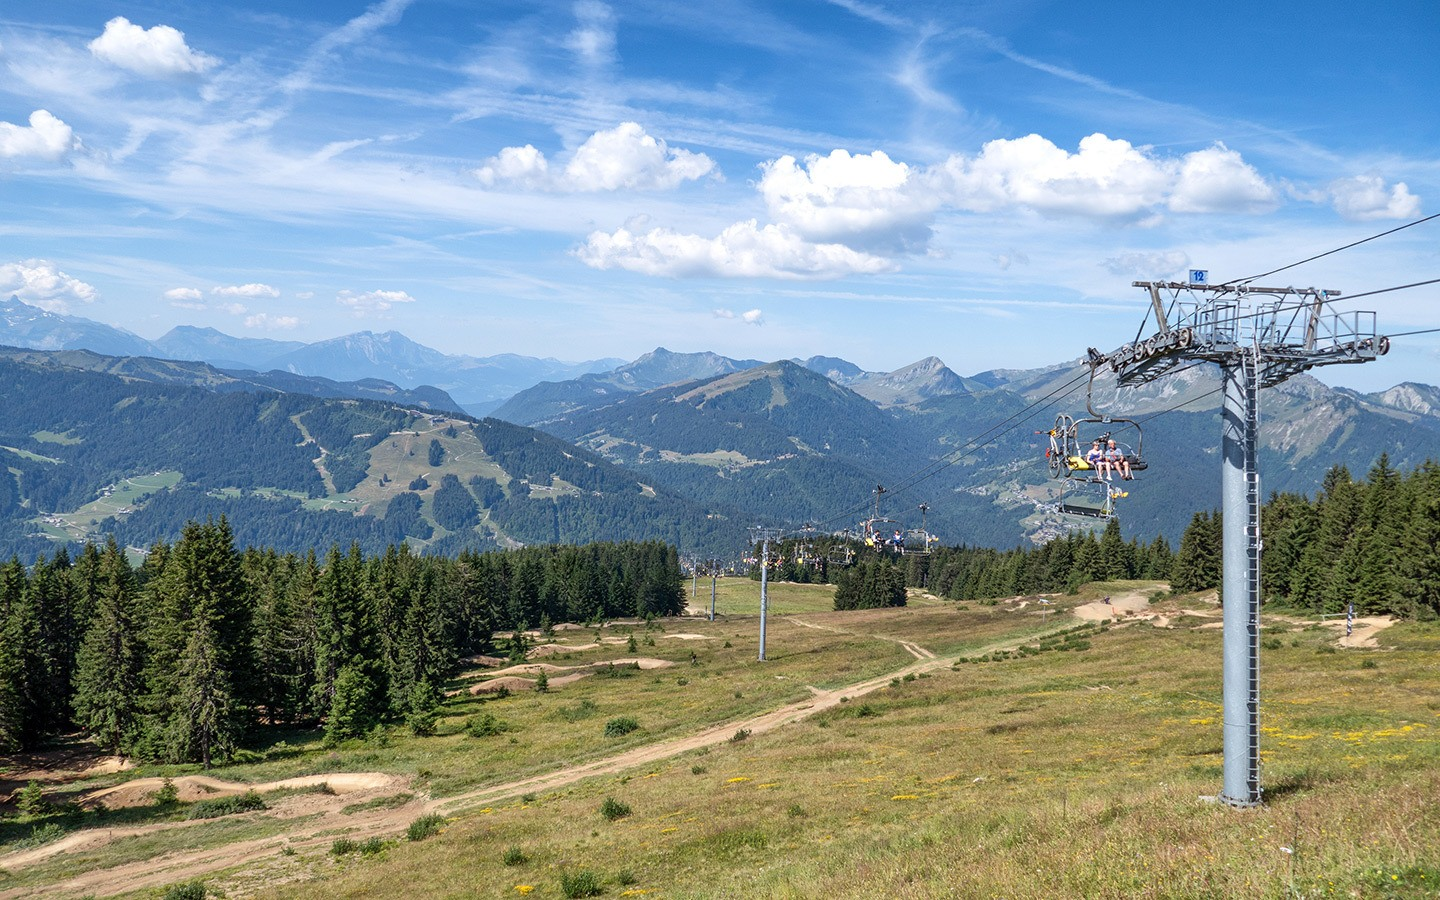 Summer in Morzine in the French Alps